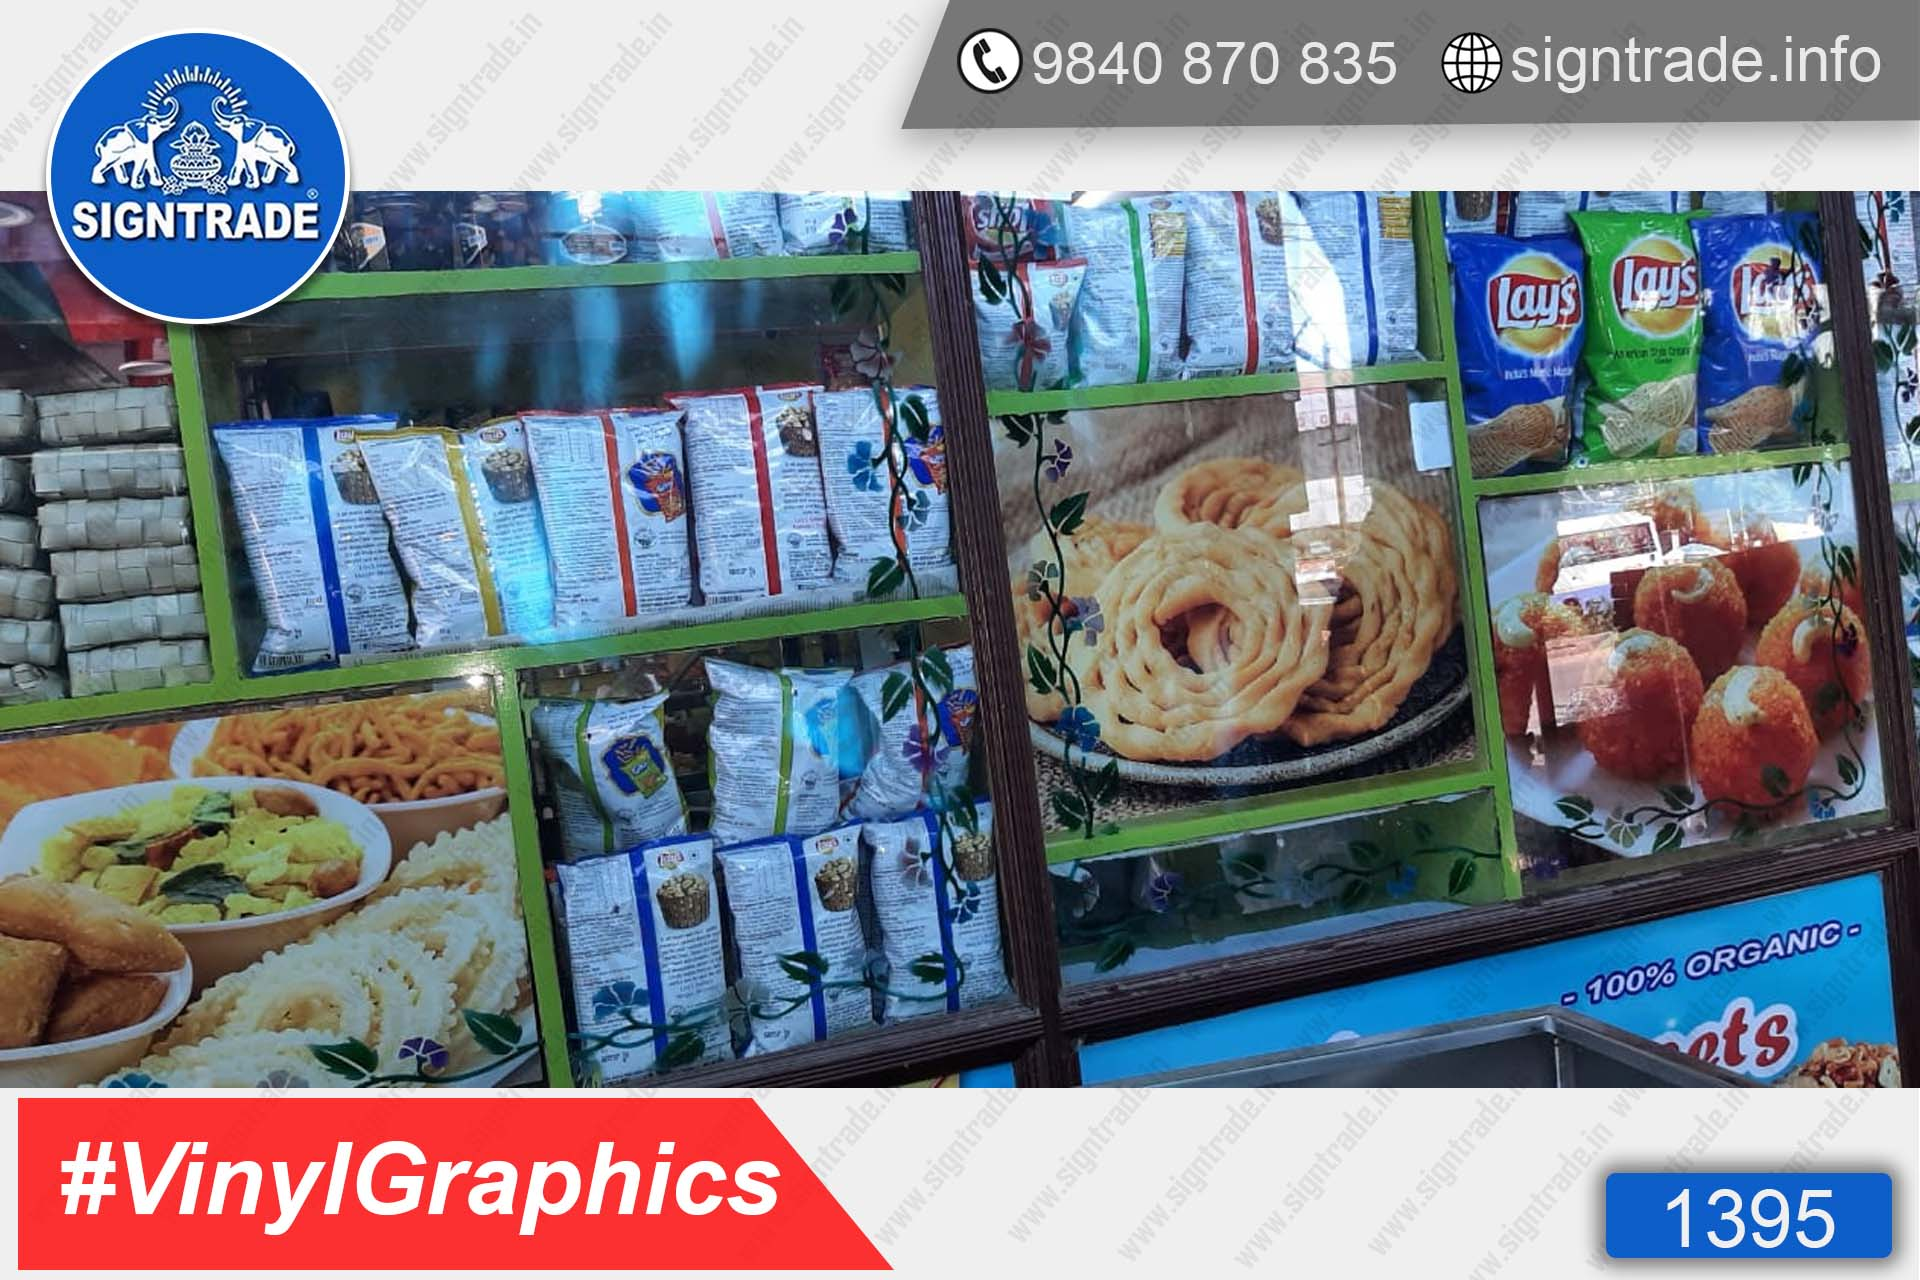 1395, Vinyl Graphics, Wall Graphics, Wall Wrapping, wall stickers, wall Wraps, Wall Branding, GlassDoor Branding, GlassDoor Graphics, GlassDoor Wraps, Wraps in Glass, Glass door branding, Glass wall branding